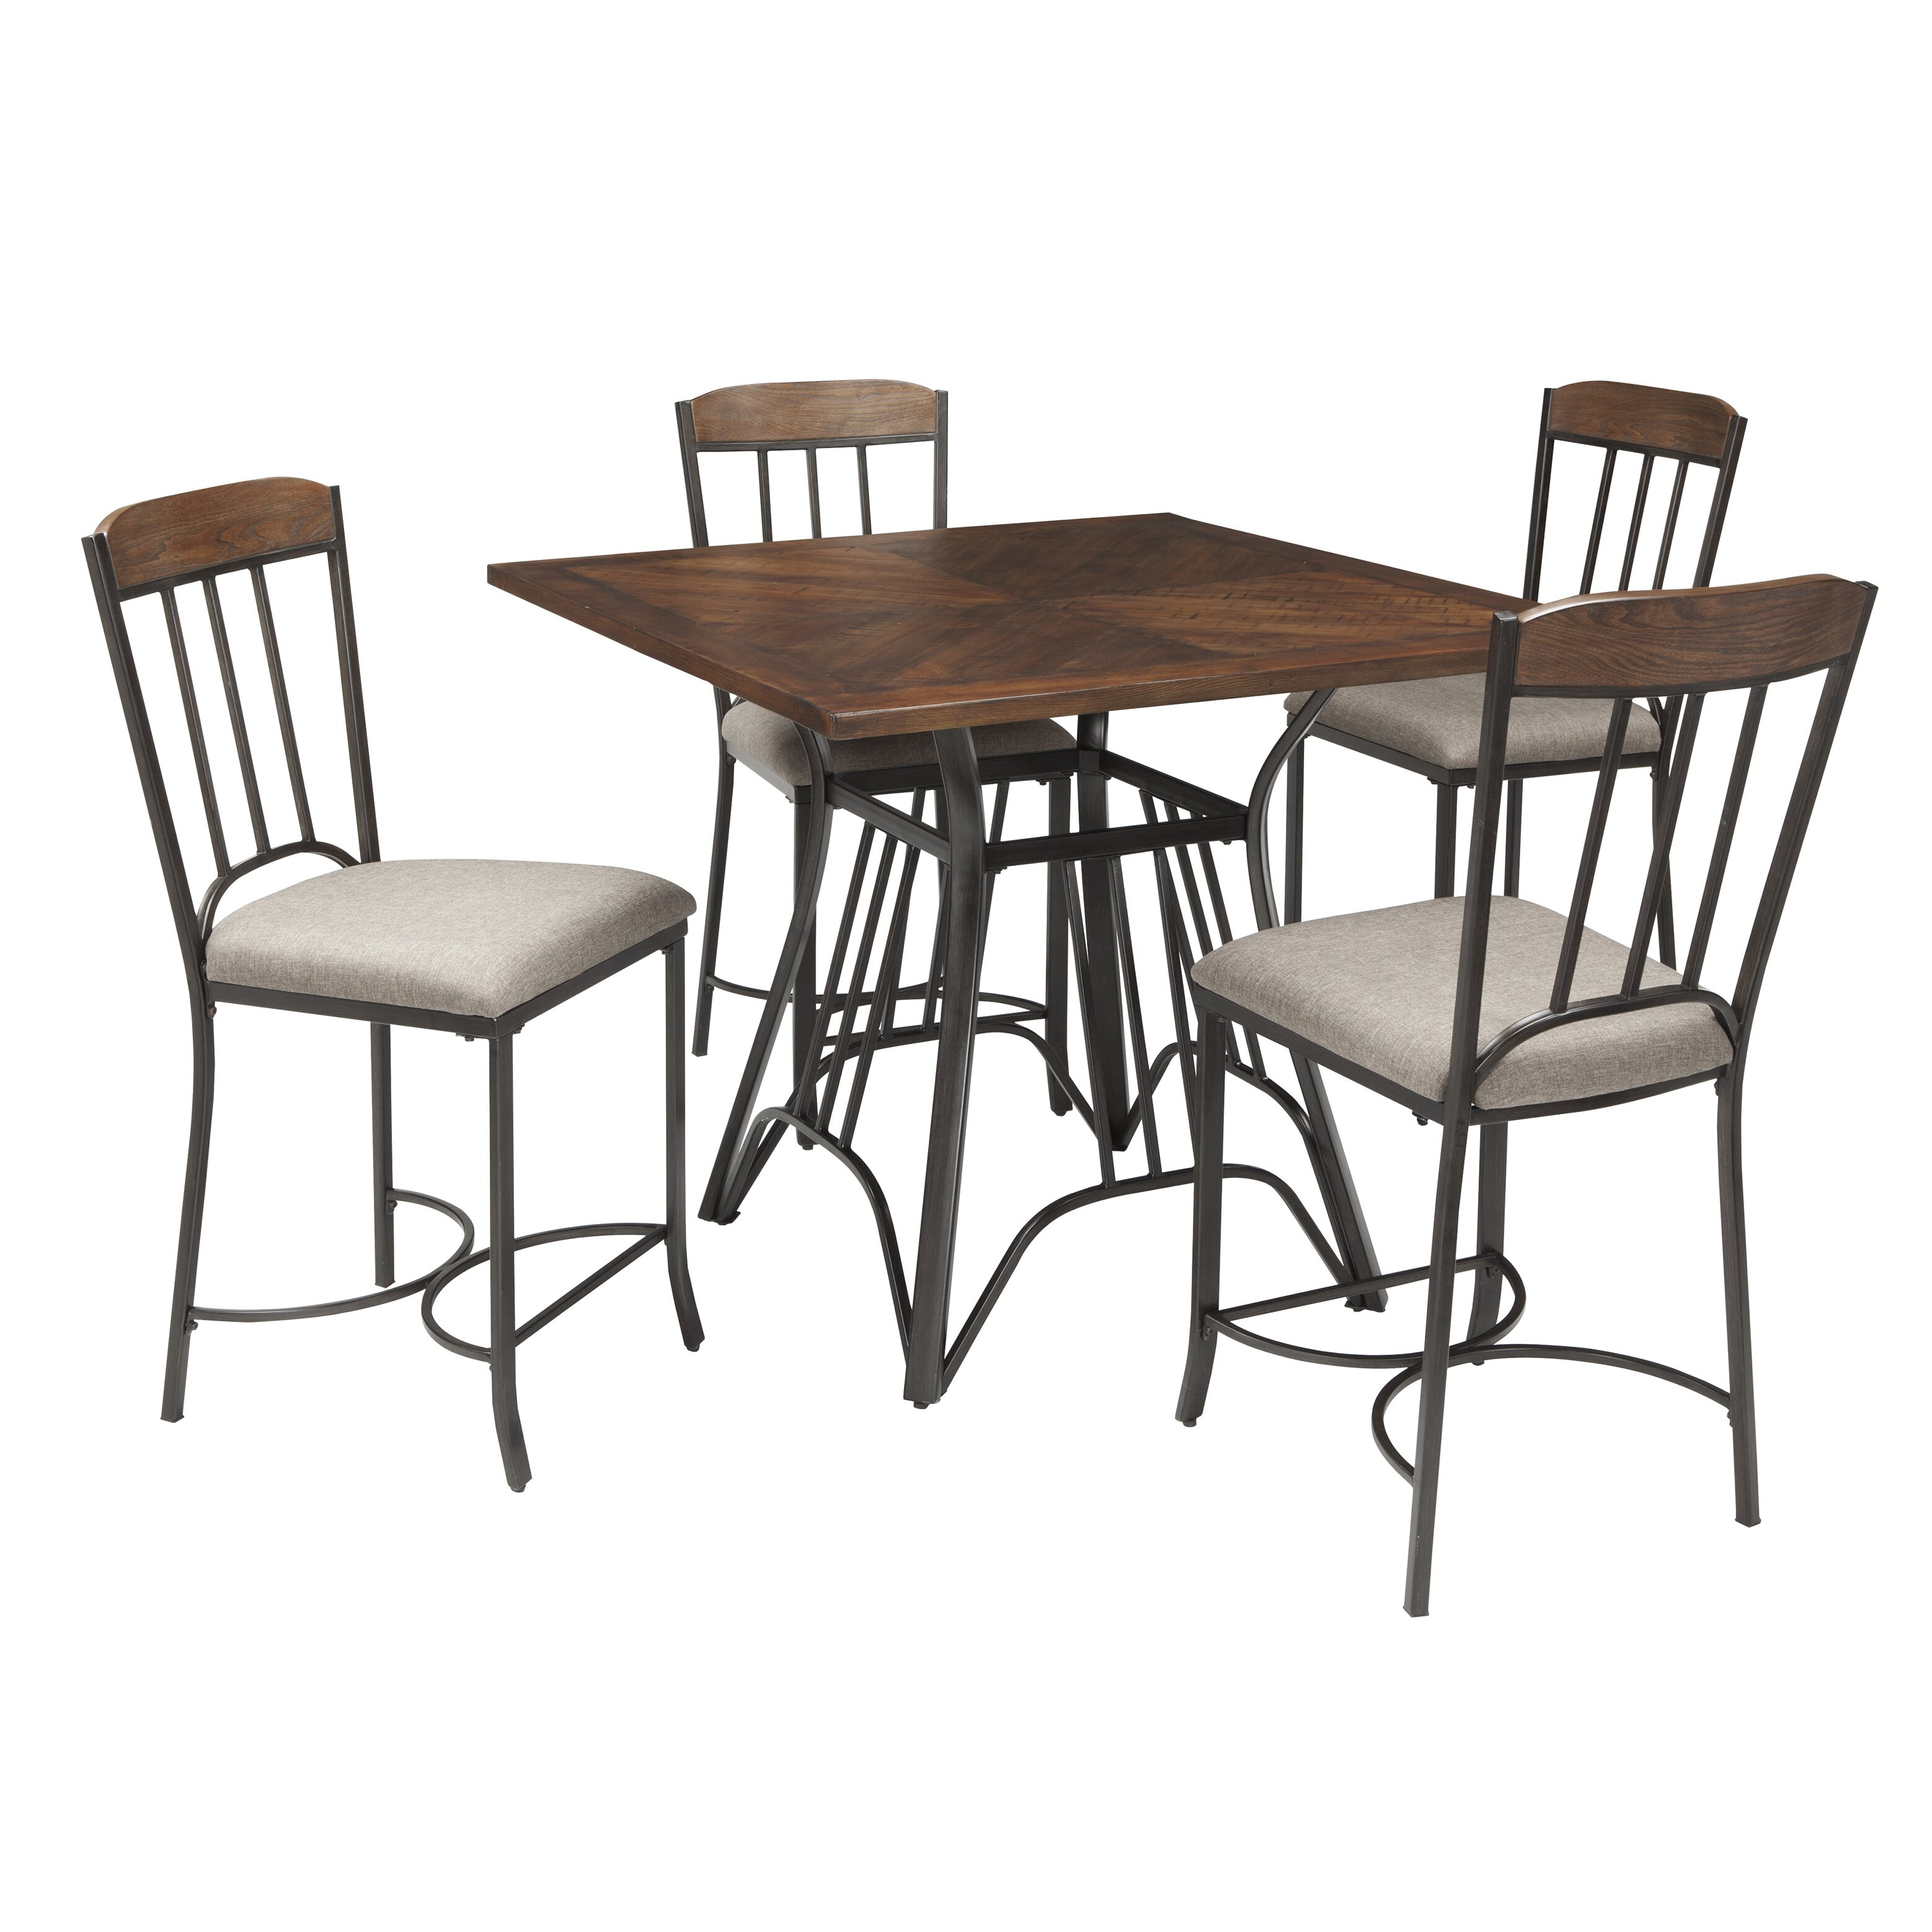 Signature Design By Ashley Zanilly 5 Piece Pub Table Set Wayfair